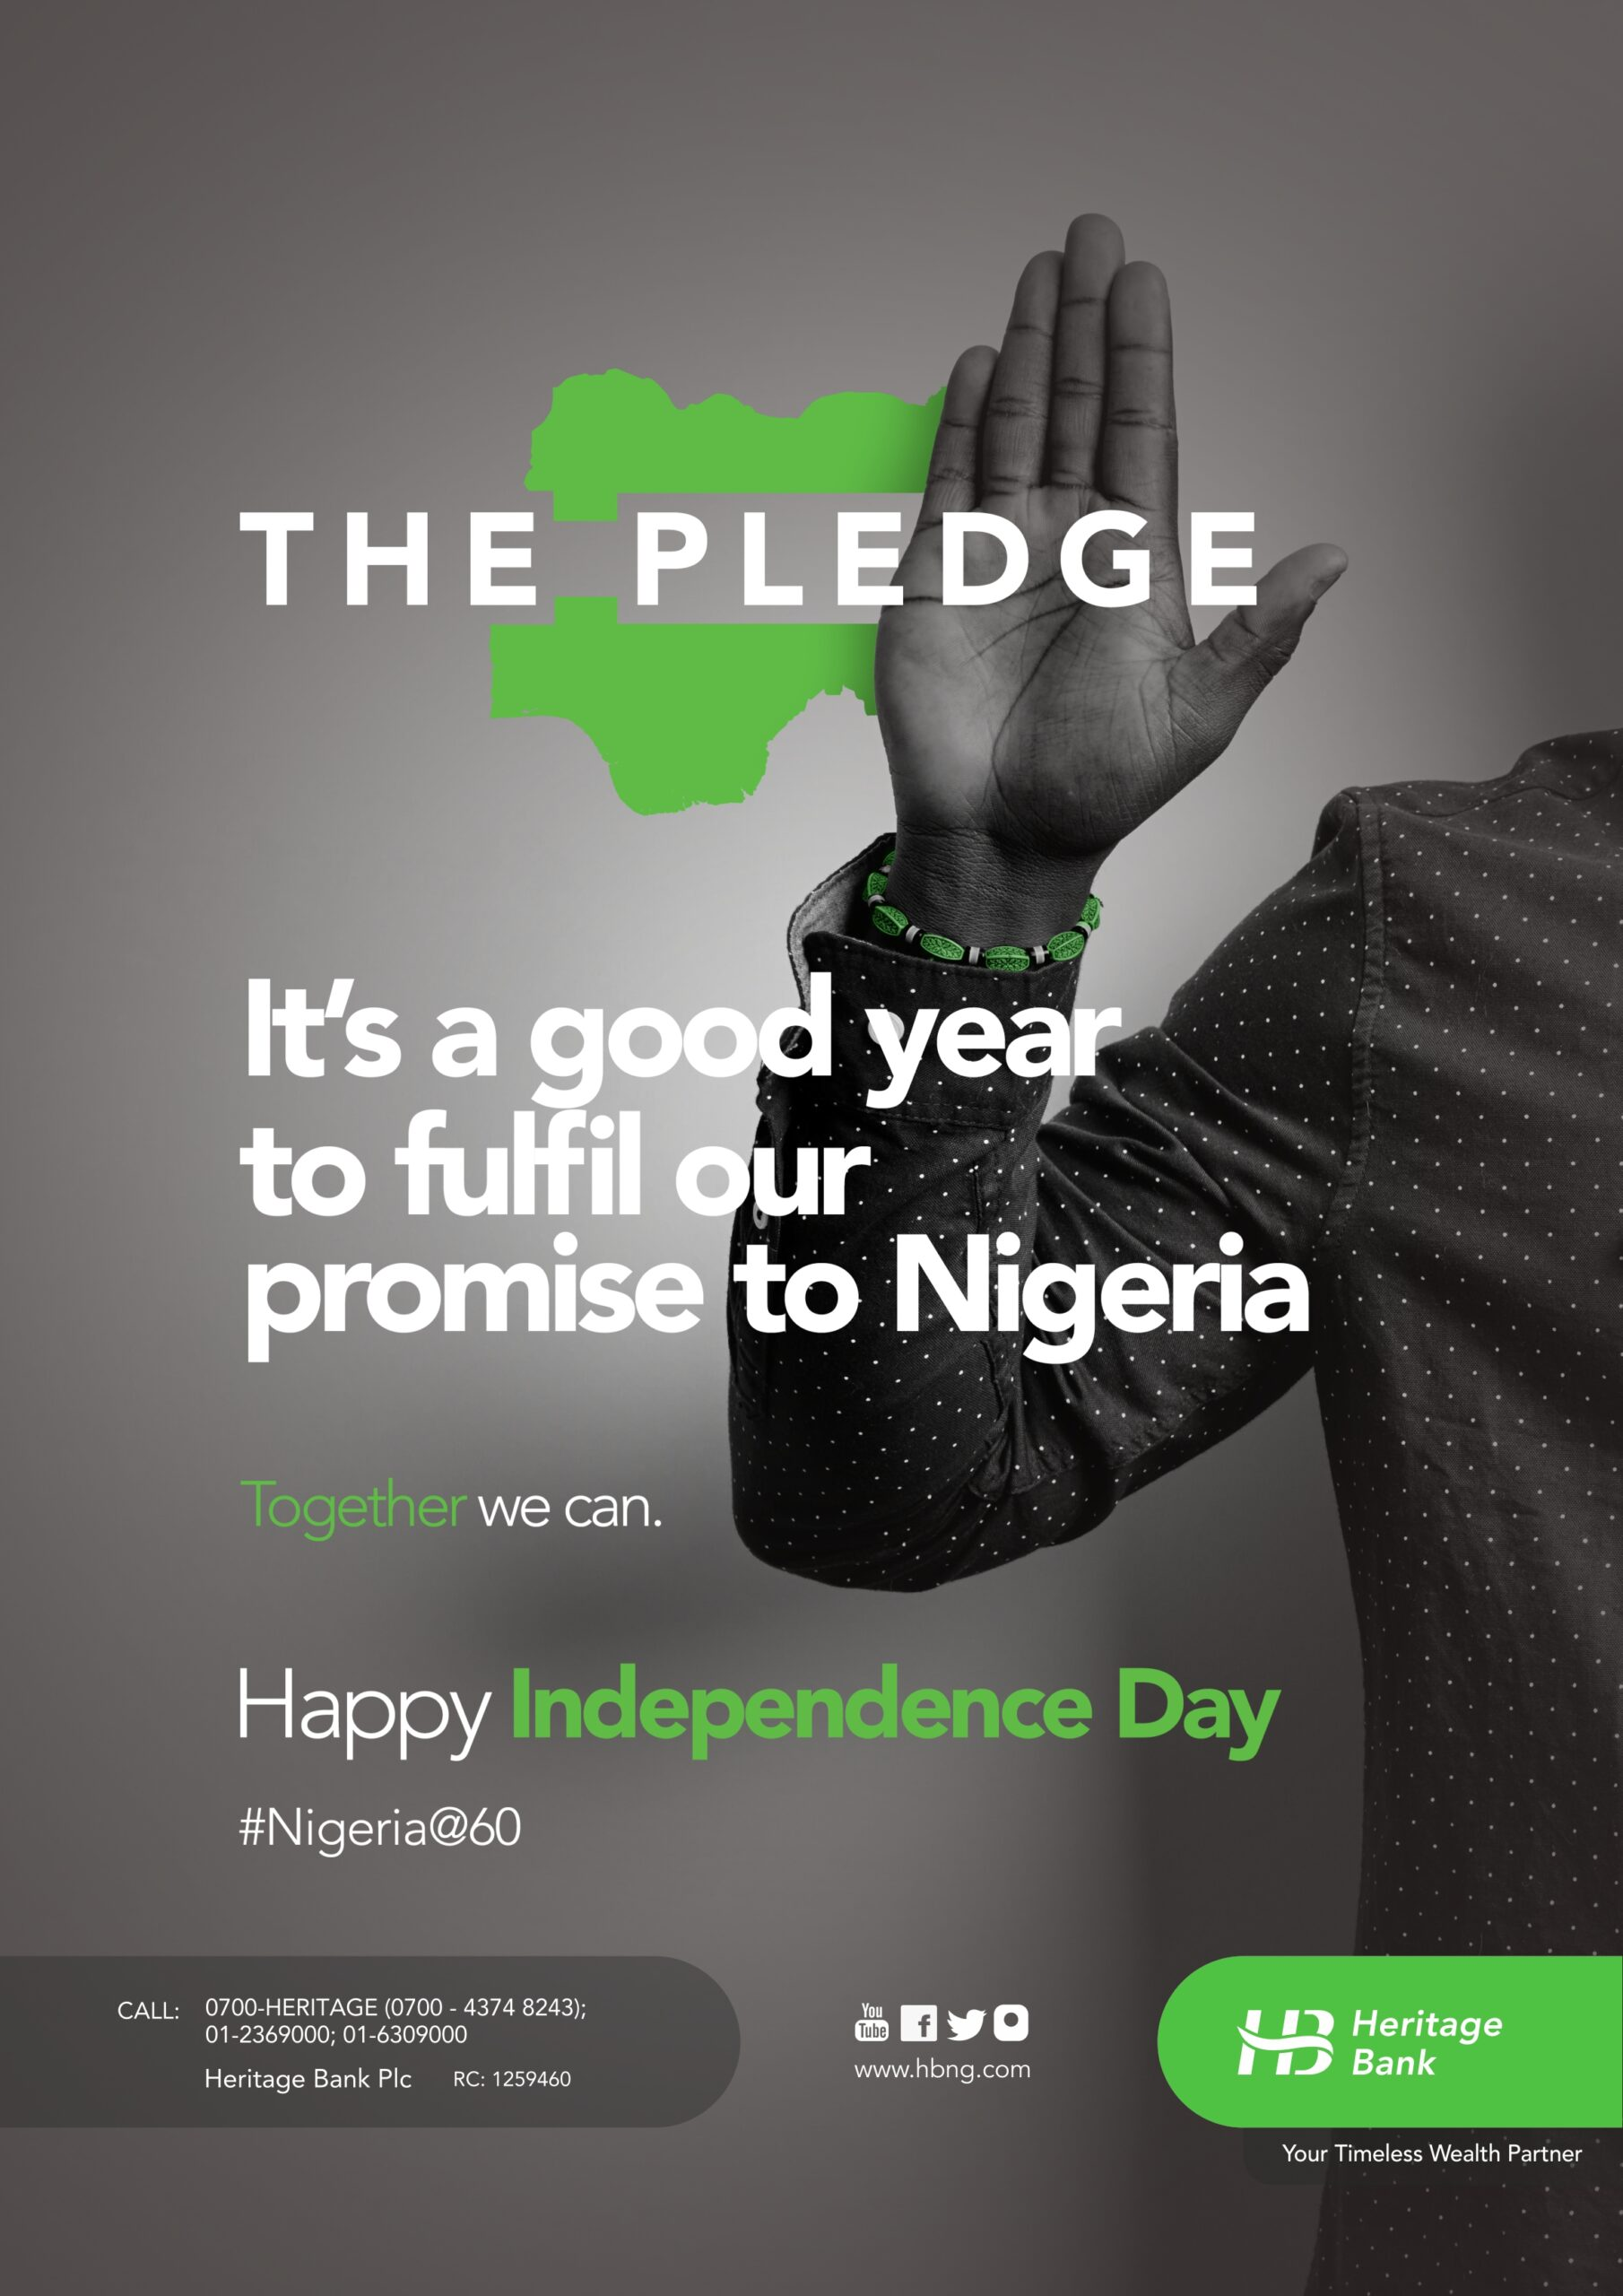 Heritage Bank joins in celebration of Nigeria At 60